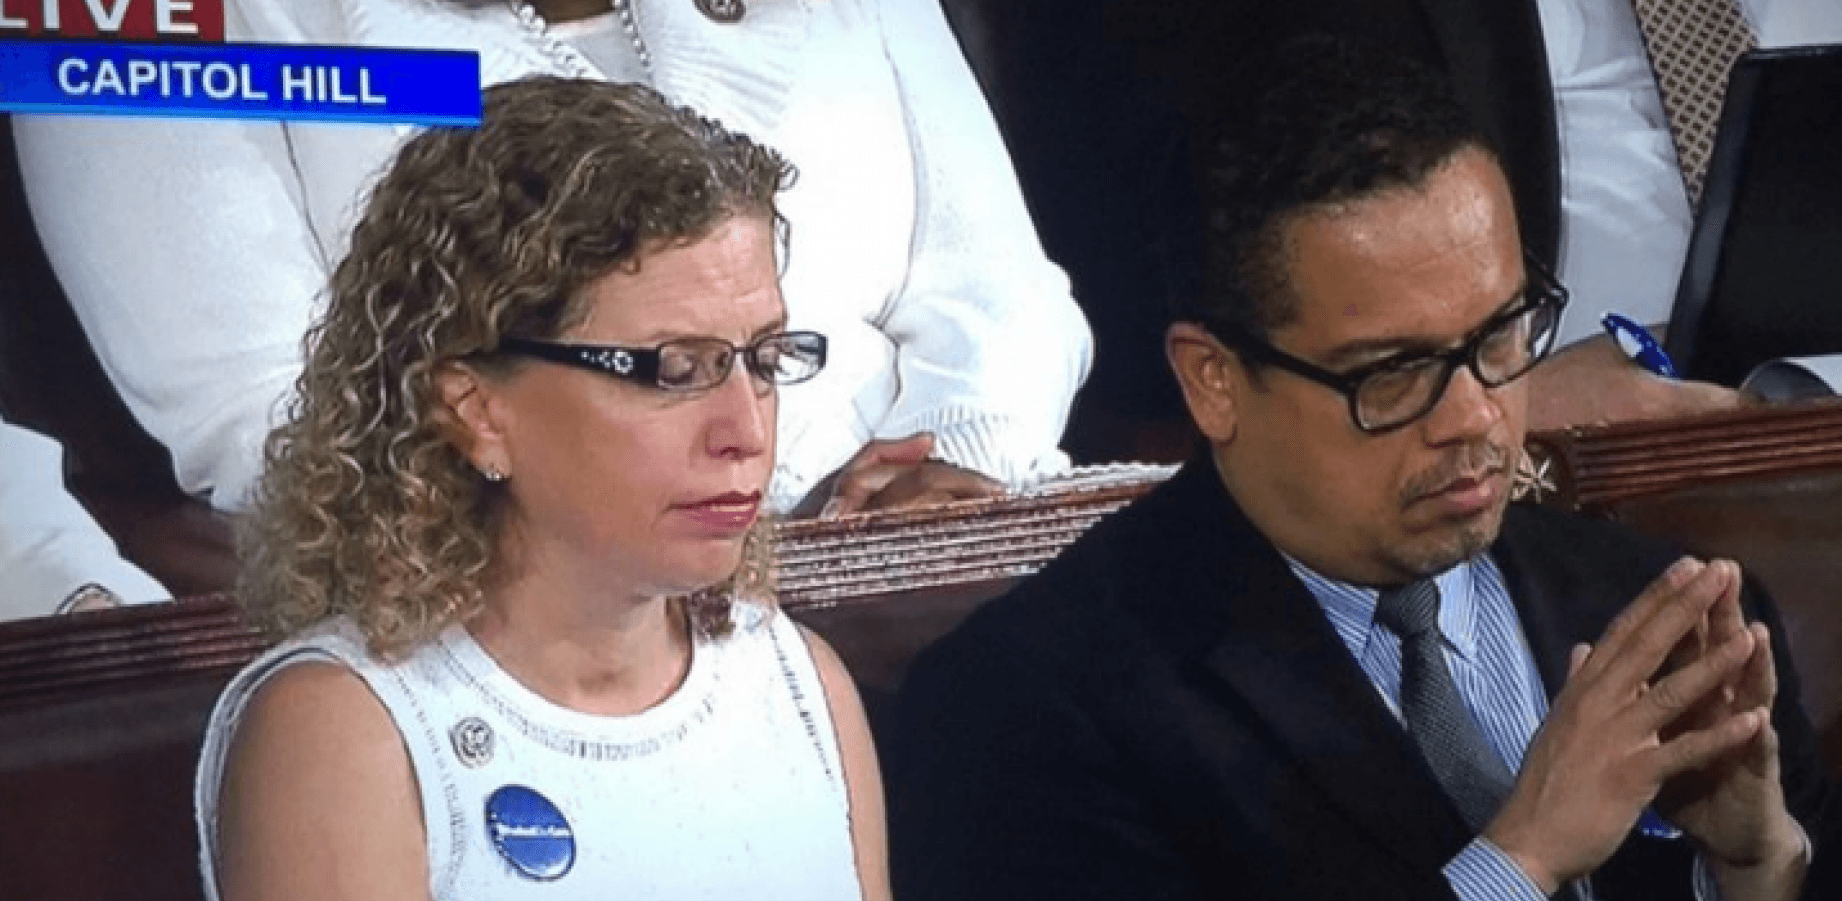 AWFUL: Top Democrats Refuse To Stand, Clap For Navy SEAL Widow Honored By Trump